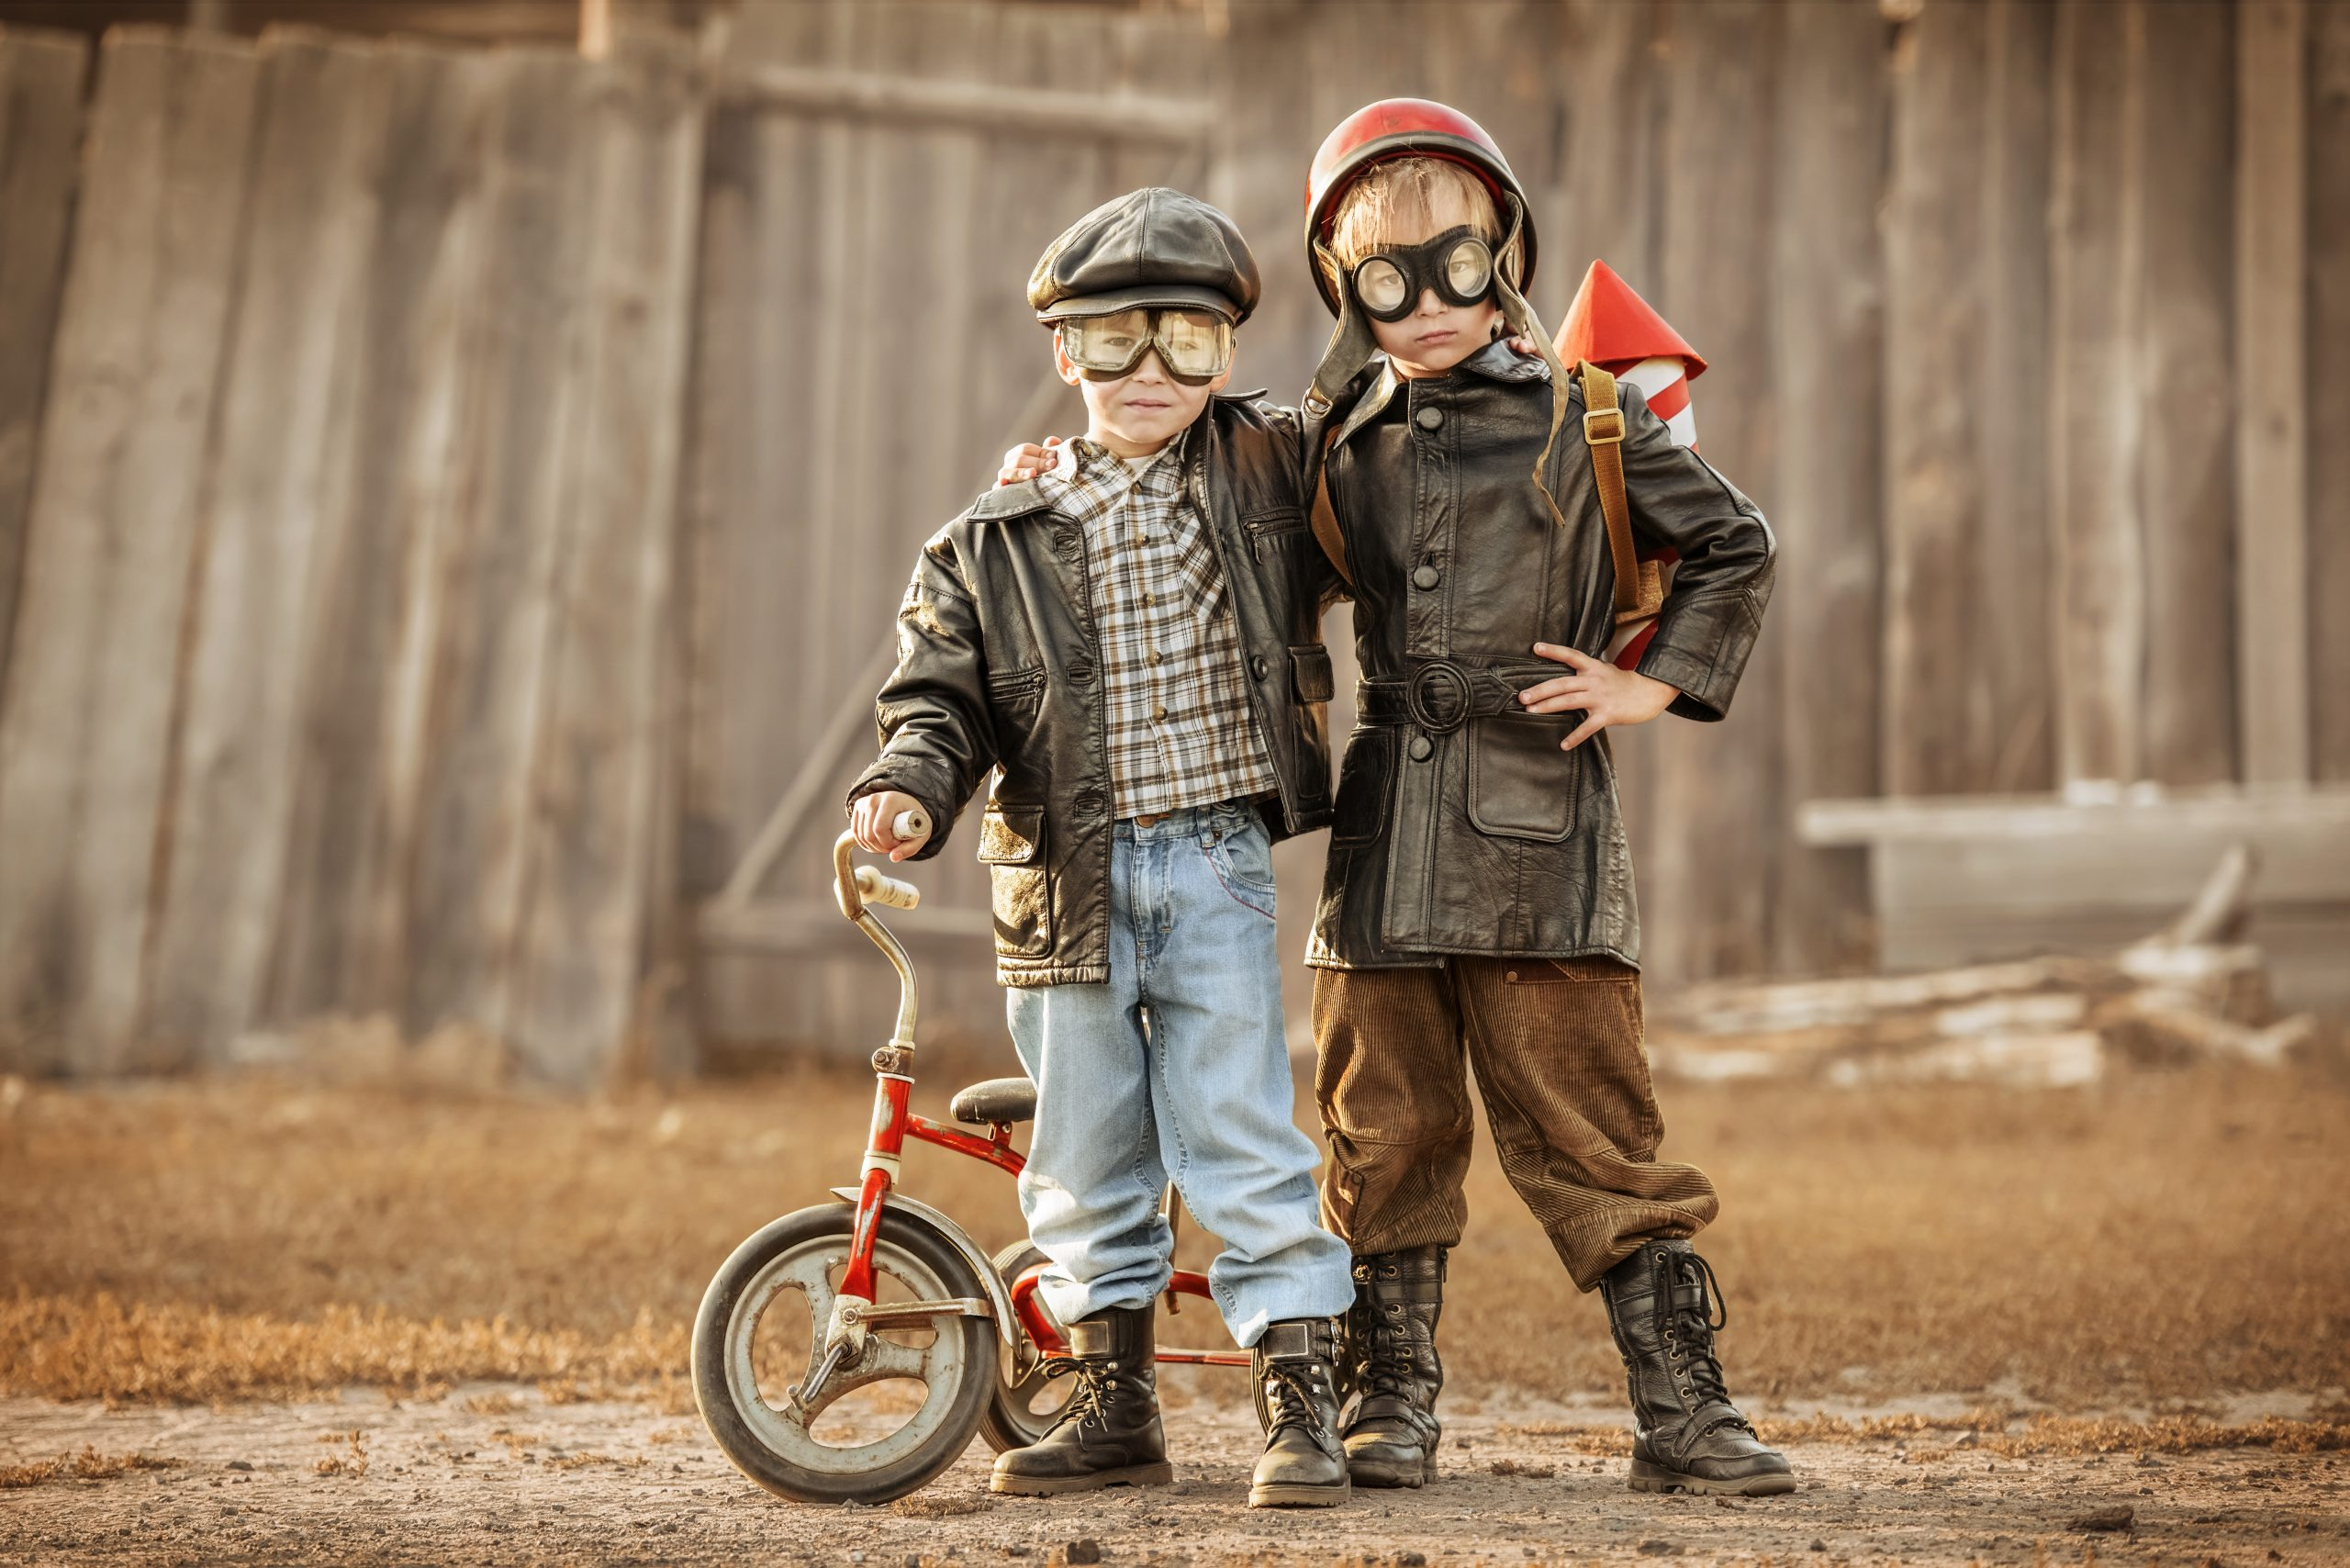 Boys in the image of a rider and a rocketman play in the backyard of the house